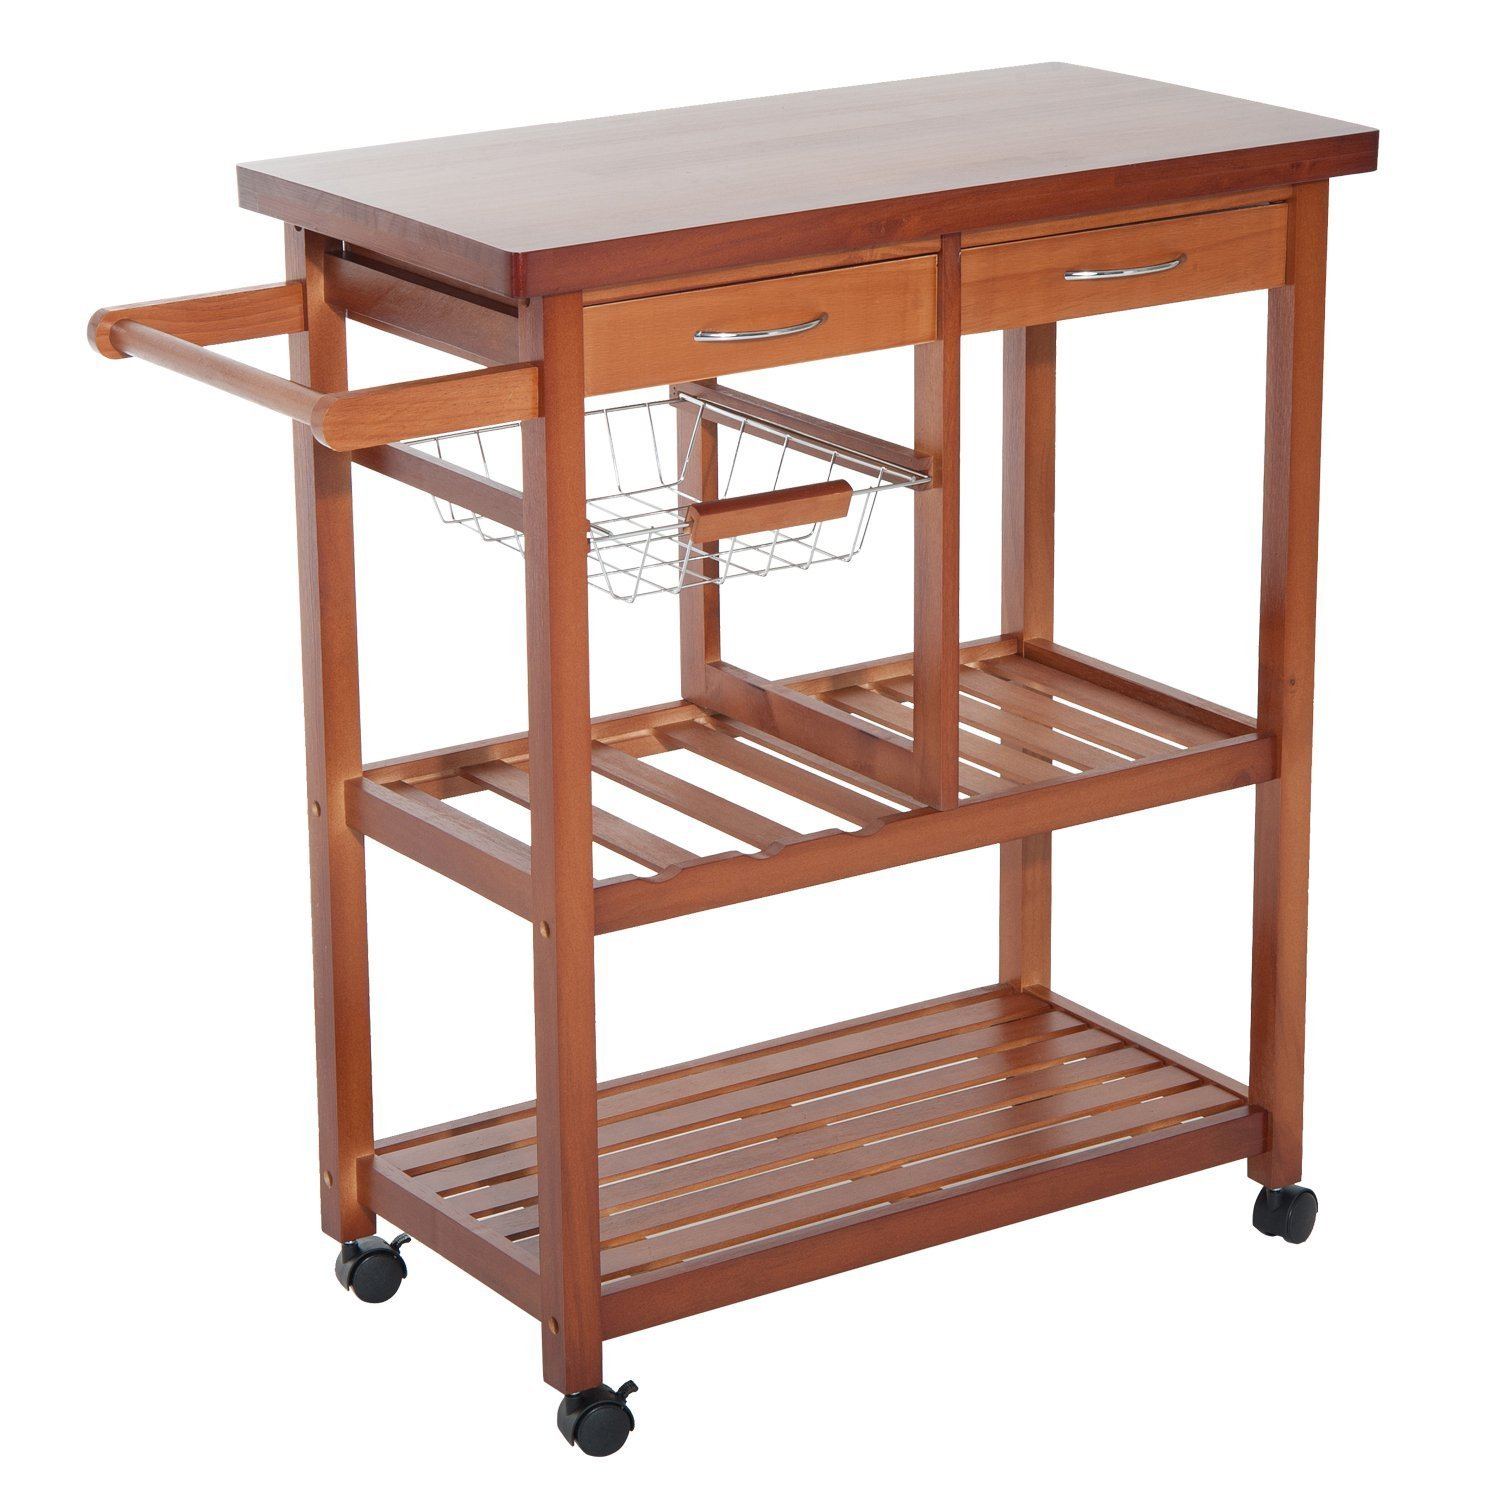 HomCom Wooden Rolling Storage Microwave Cart Kitchen Trolley with Drawers by Aosom Direct